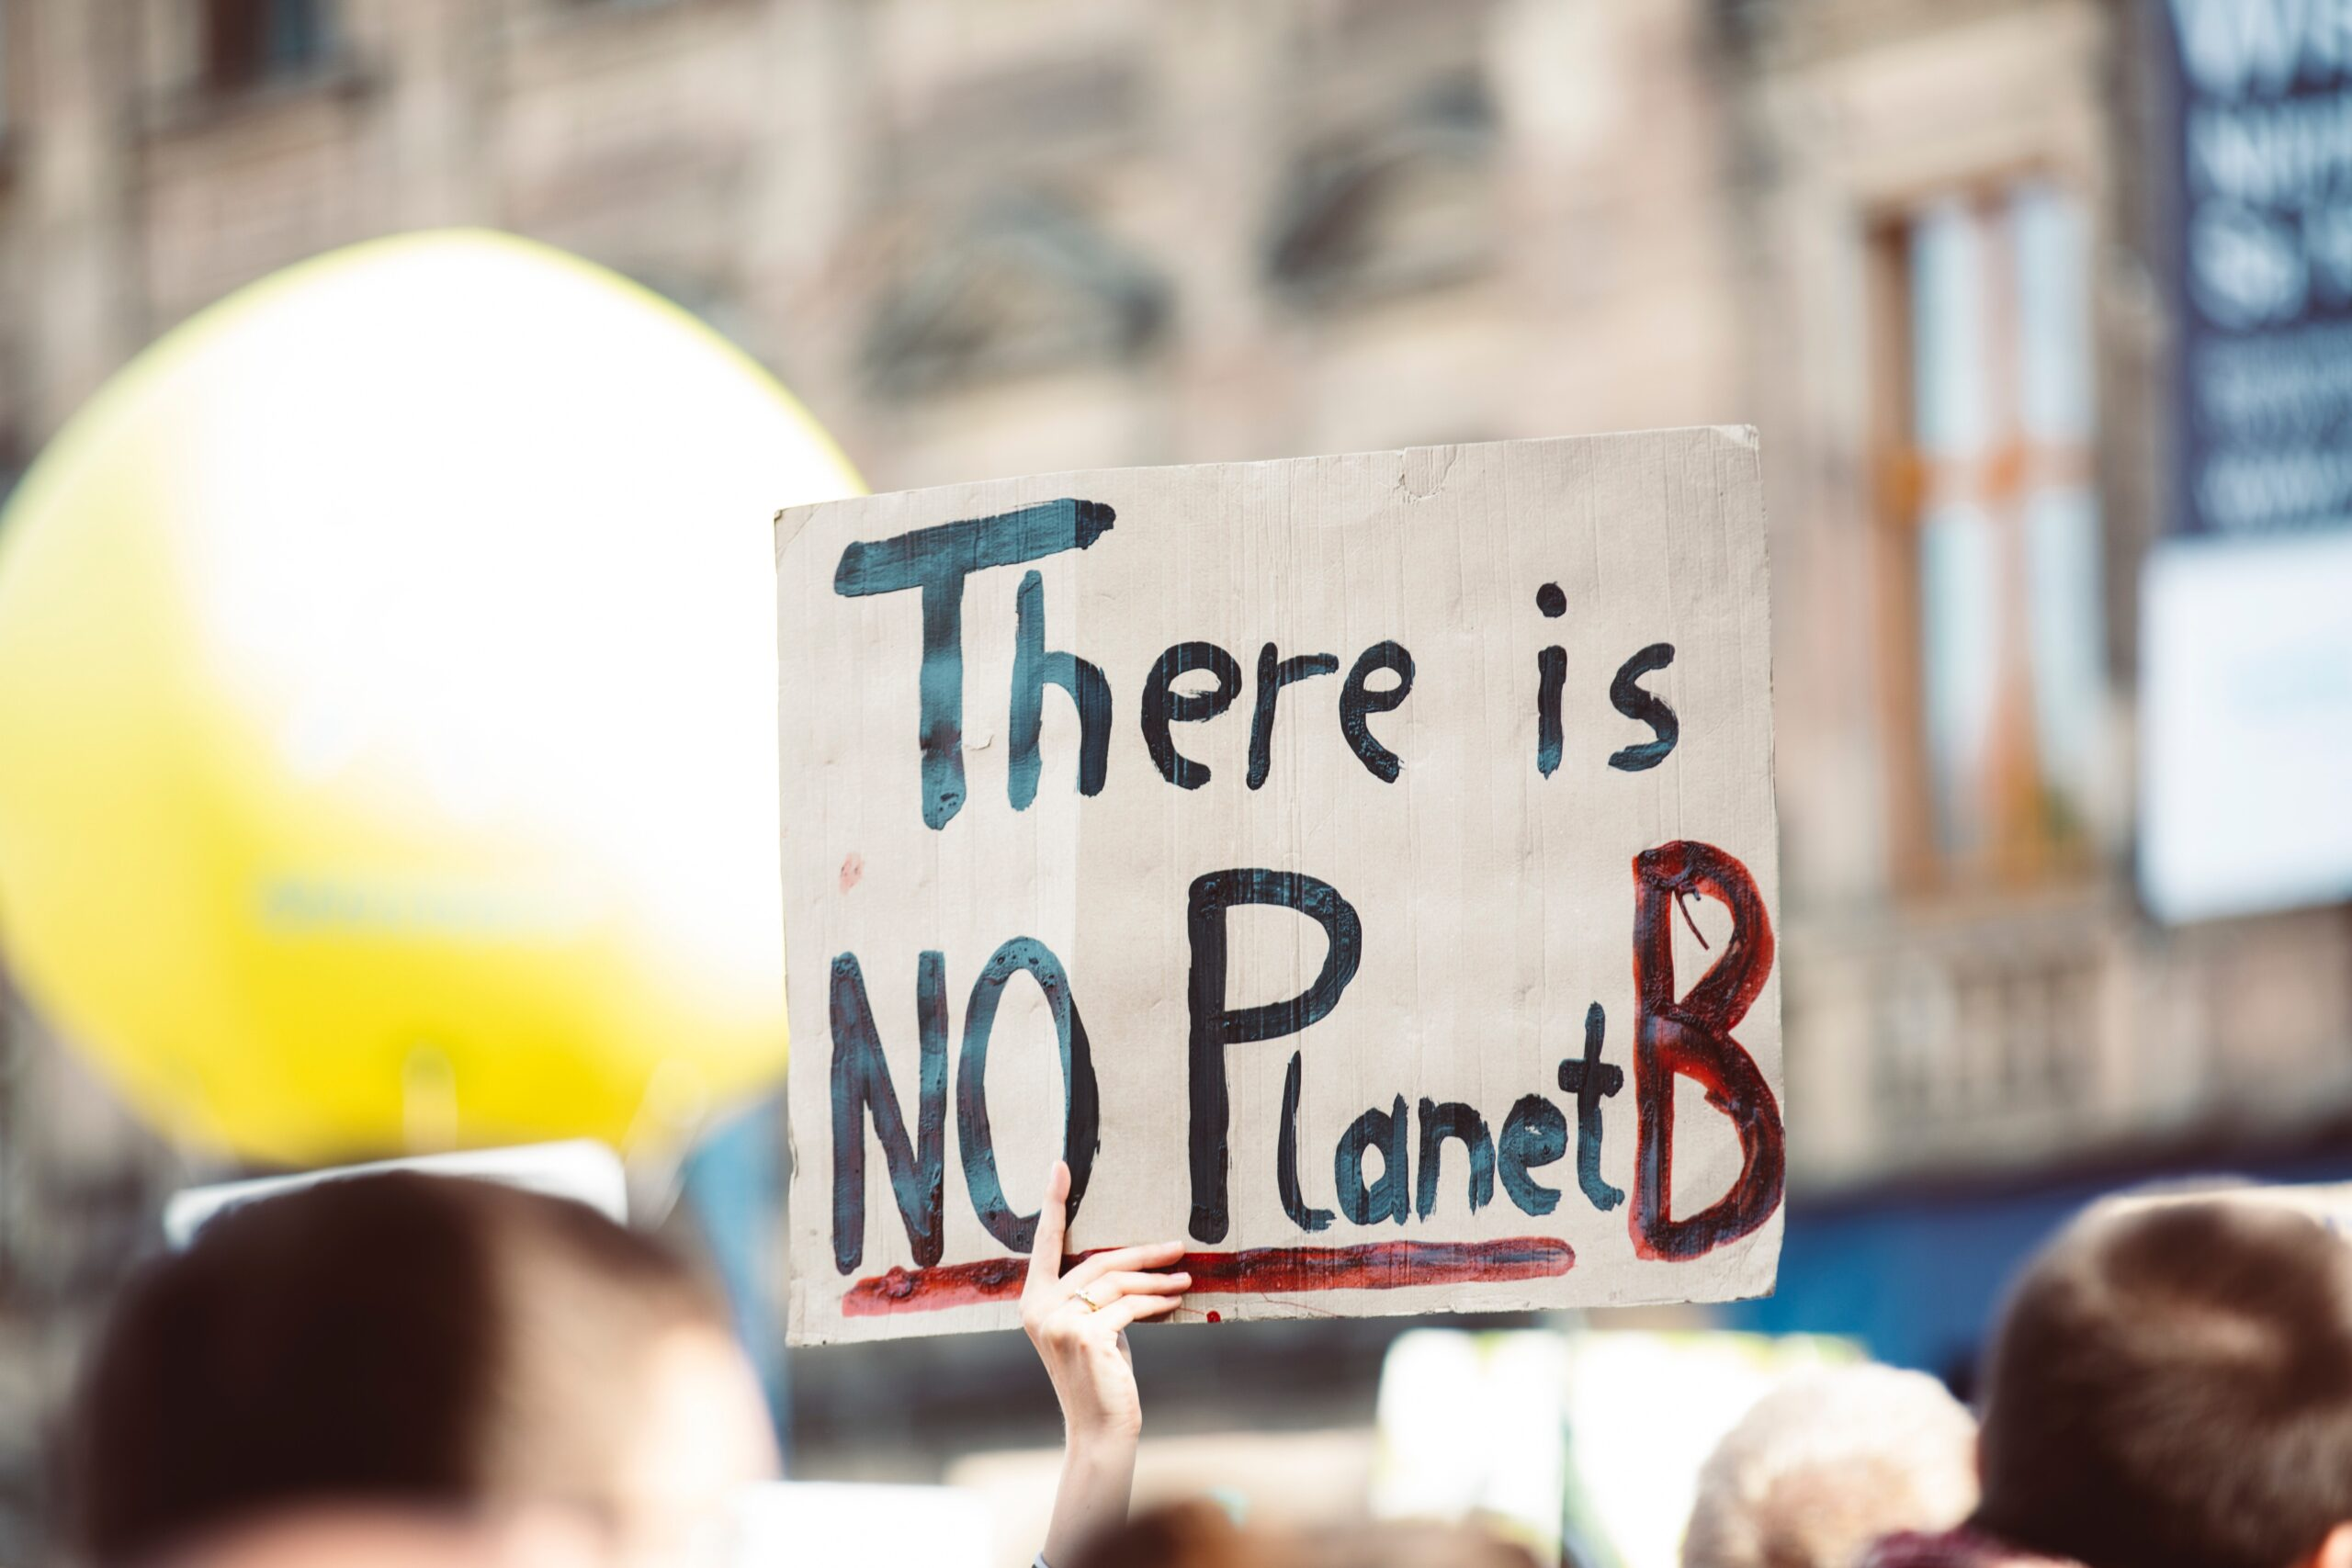 there is no planet b protest sign - ecosystem services